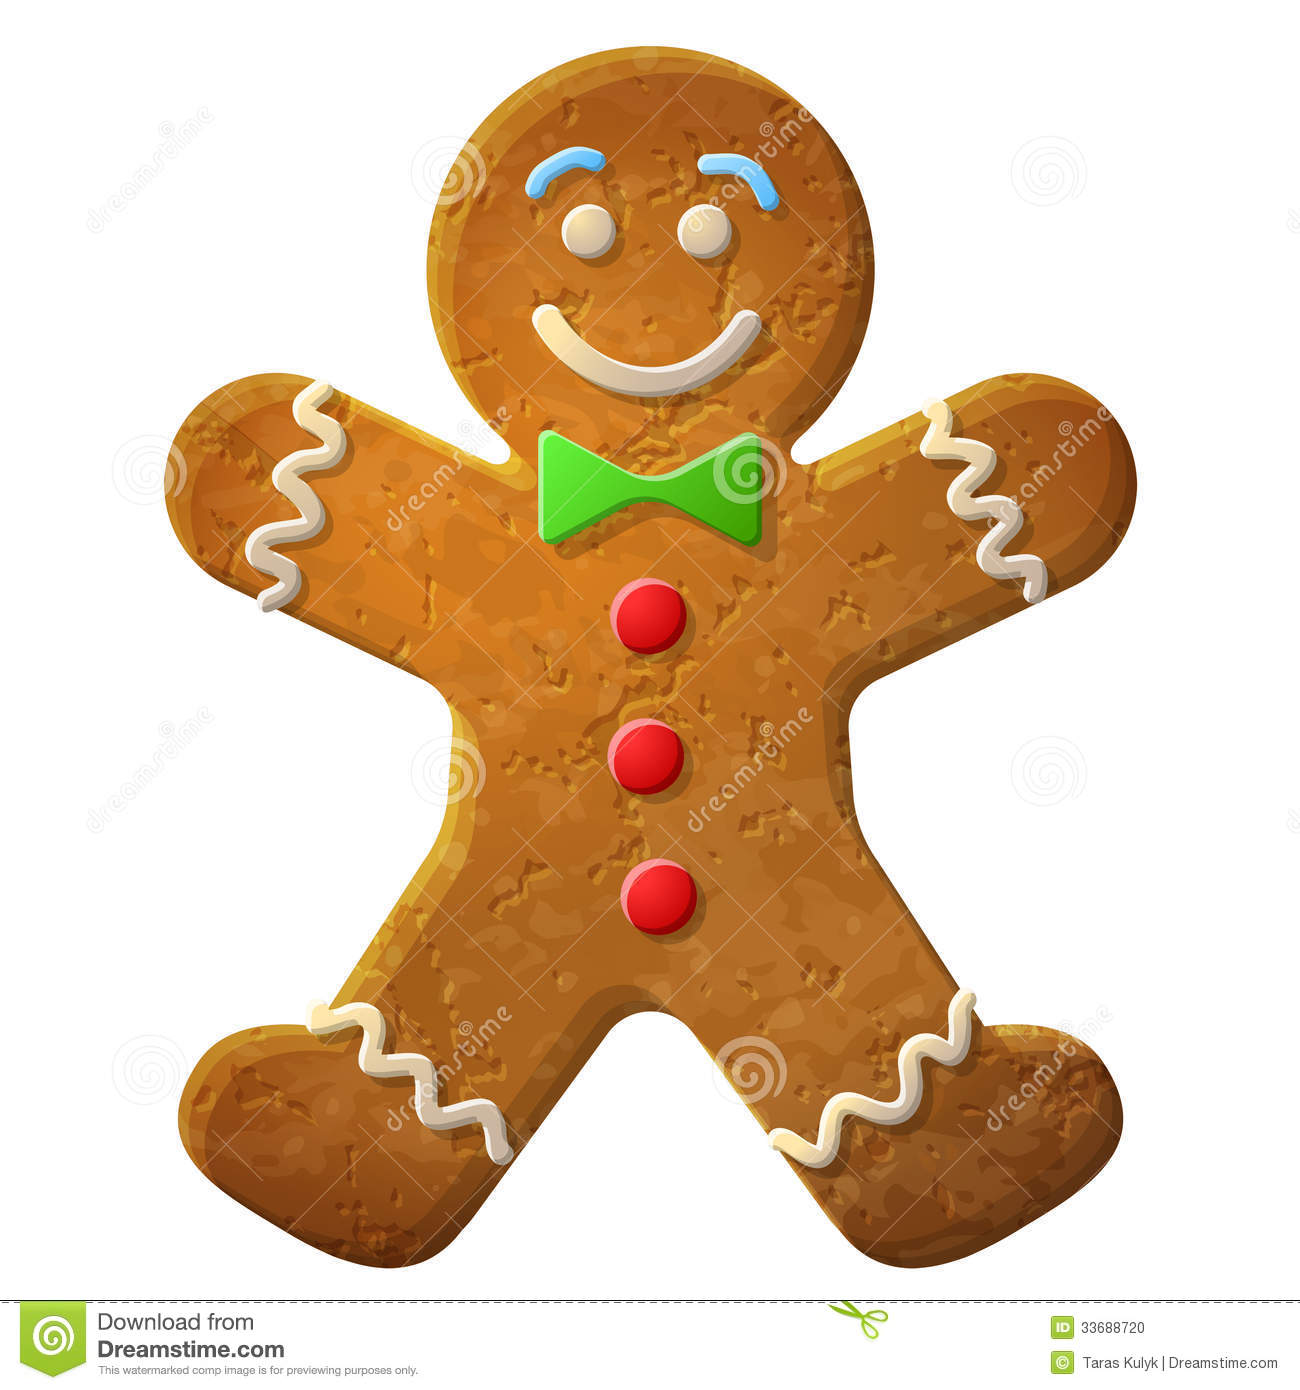 Gingerbread Man Decorated Colored Icing Stock Photo - Image: 33688720